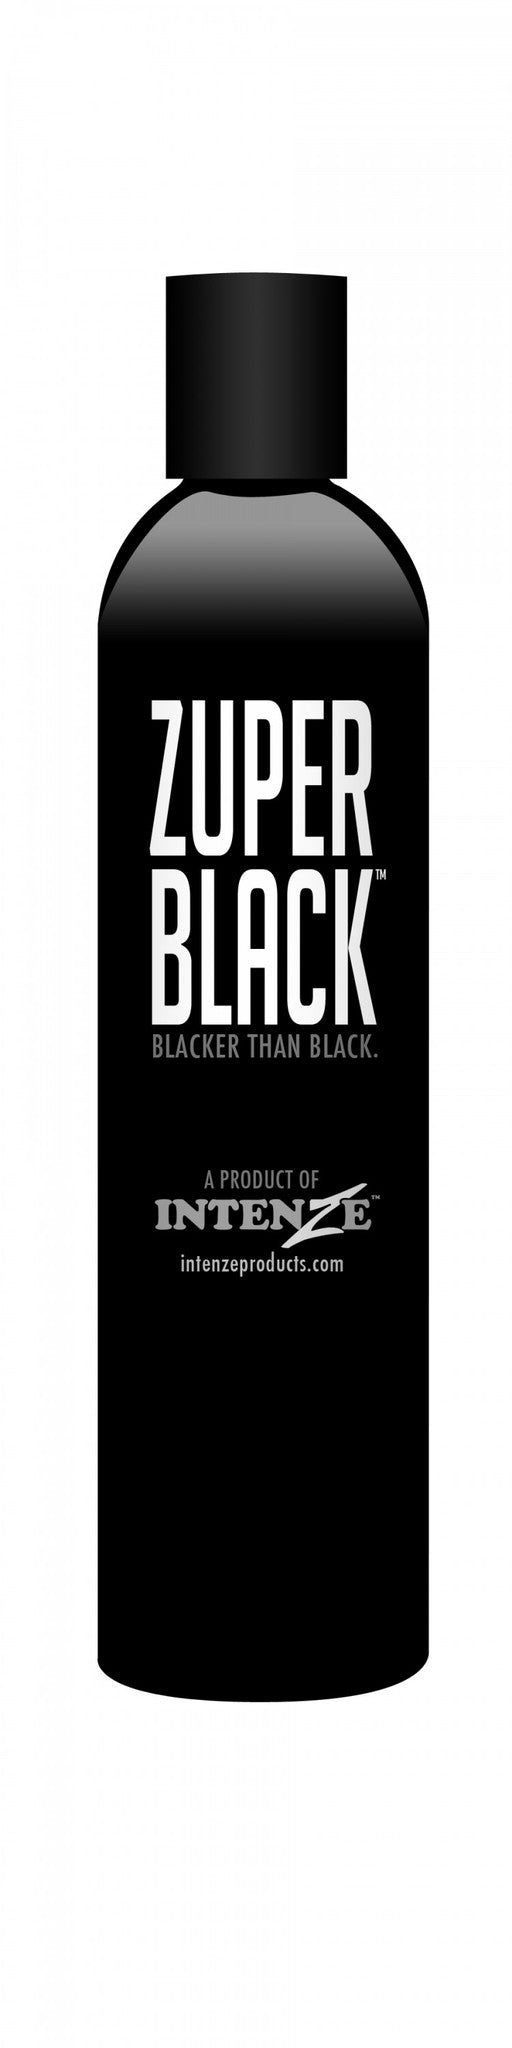 Zuper Black - 12 oz